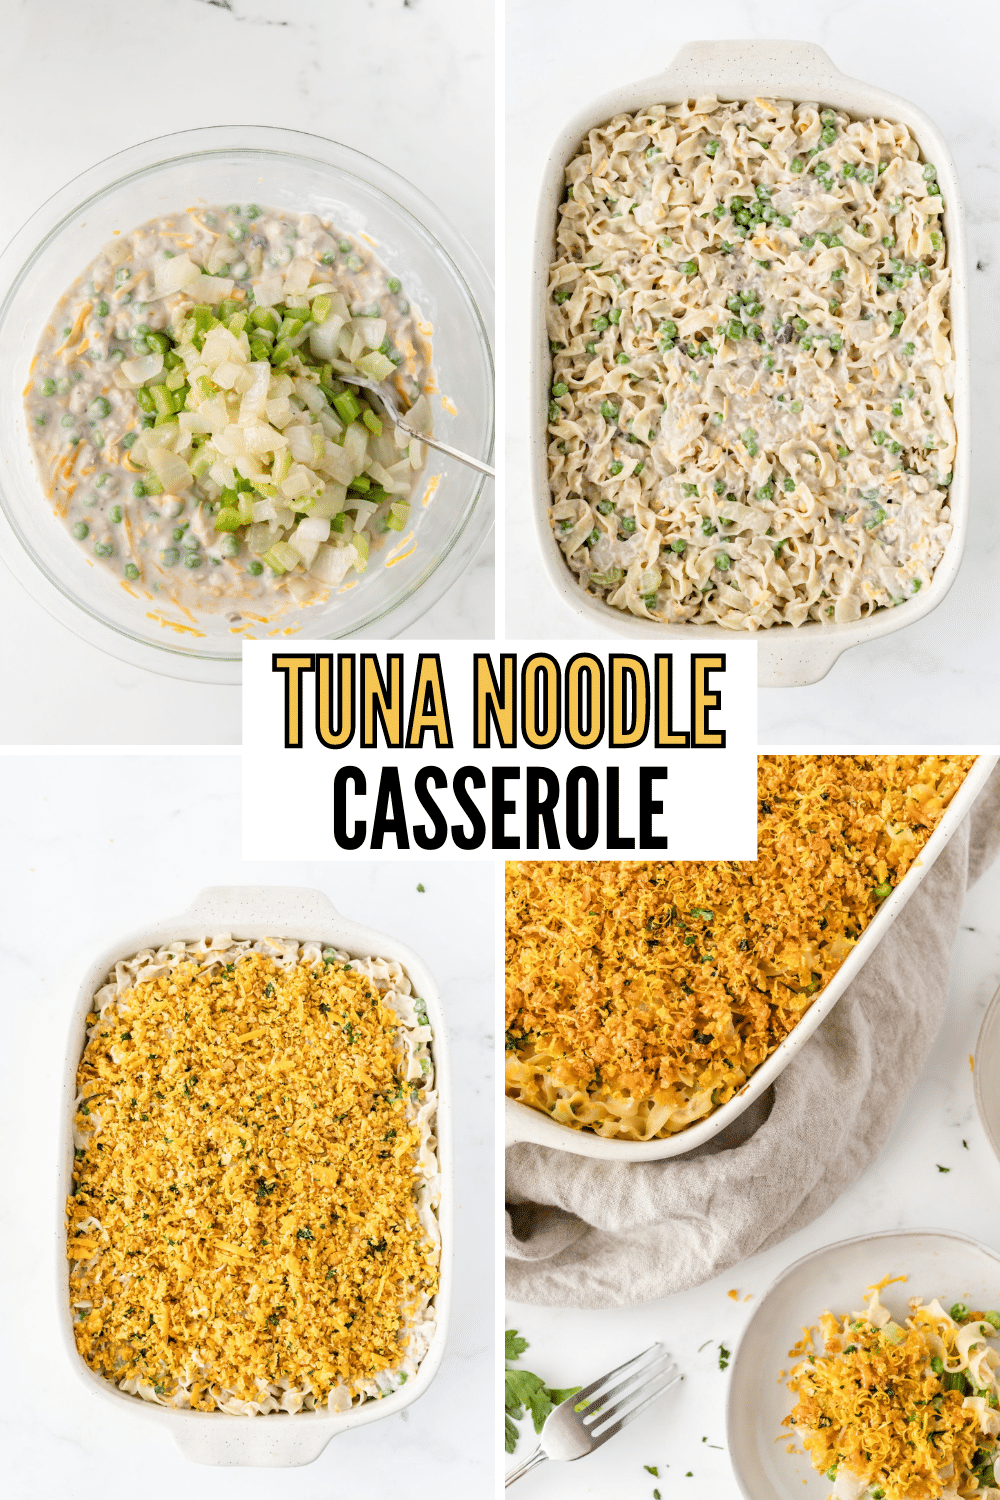 Classic Tuna Casserole is an old fashioned meal that is not only simple to make, but it's also ready for the oven in 15 minutes! #tunacasserole #tunanoodlecasserole #tuna #dinner #recipe via @wondermomwannab